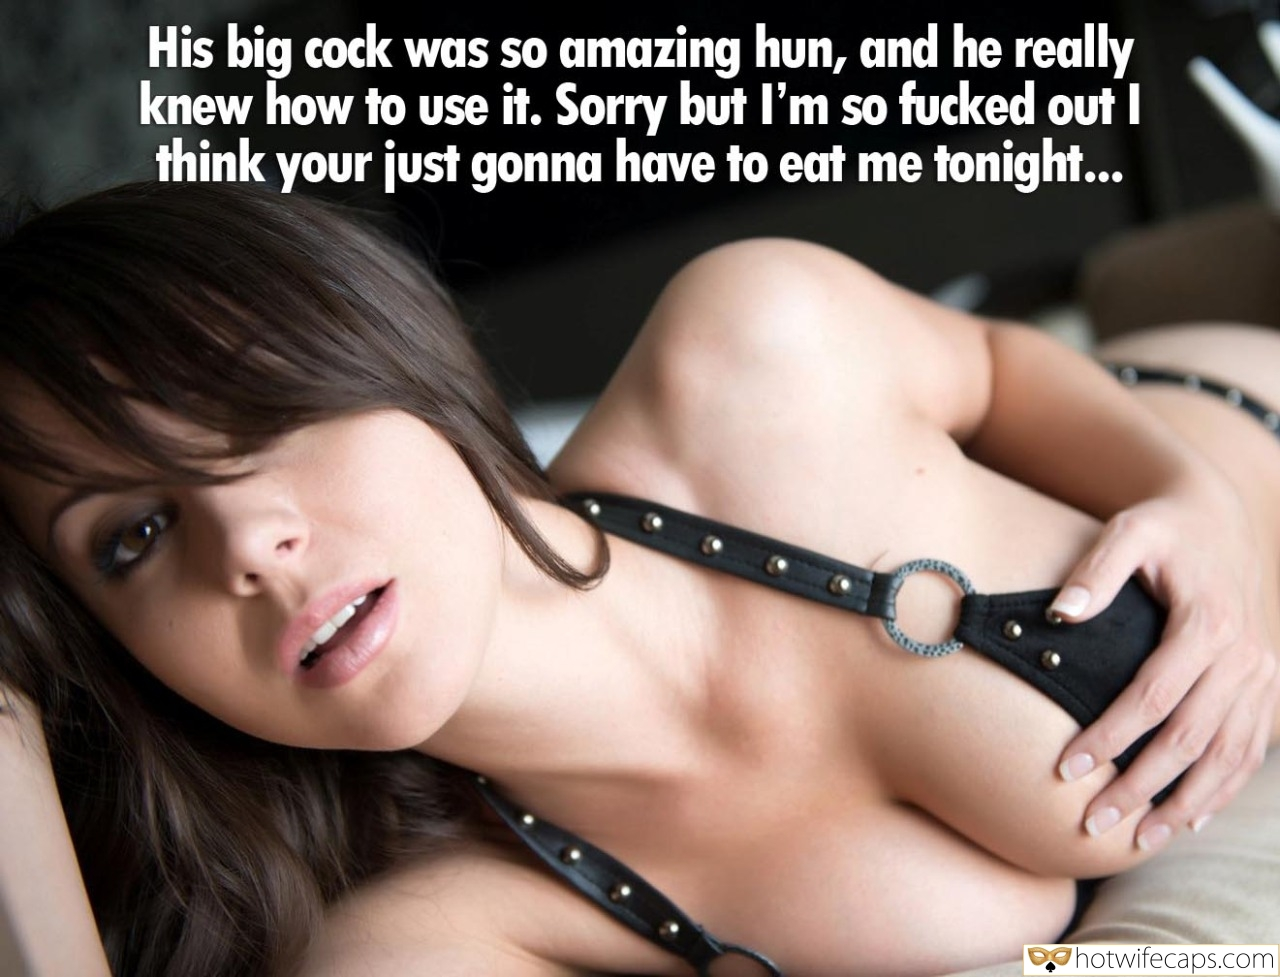 Sexy Memes Dirty Talk hotwife caption: His big cock was so amazing hun, and he really knew how to use it. Sorry but l'm so fucked out I think your just gonna have to eat me tonight… Big Boobed Wife Loves Flerting on Cam